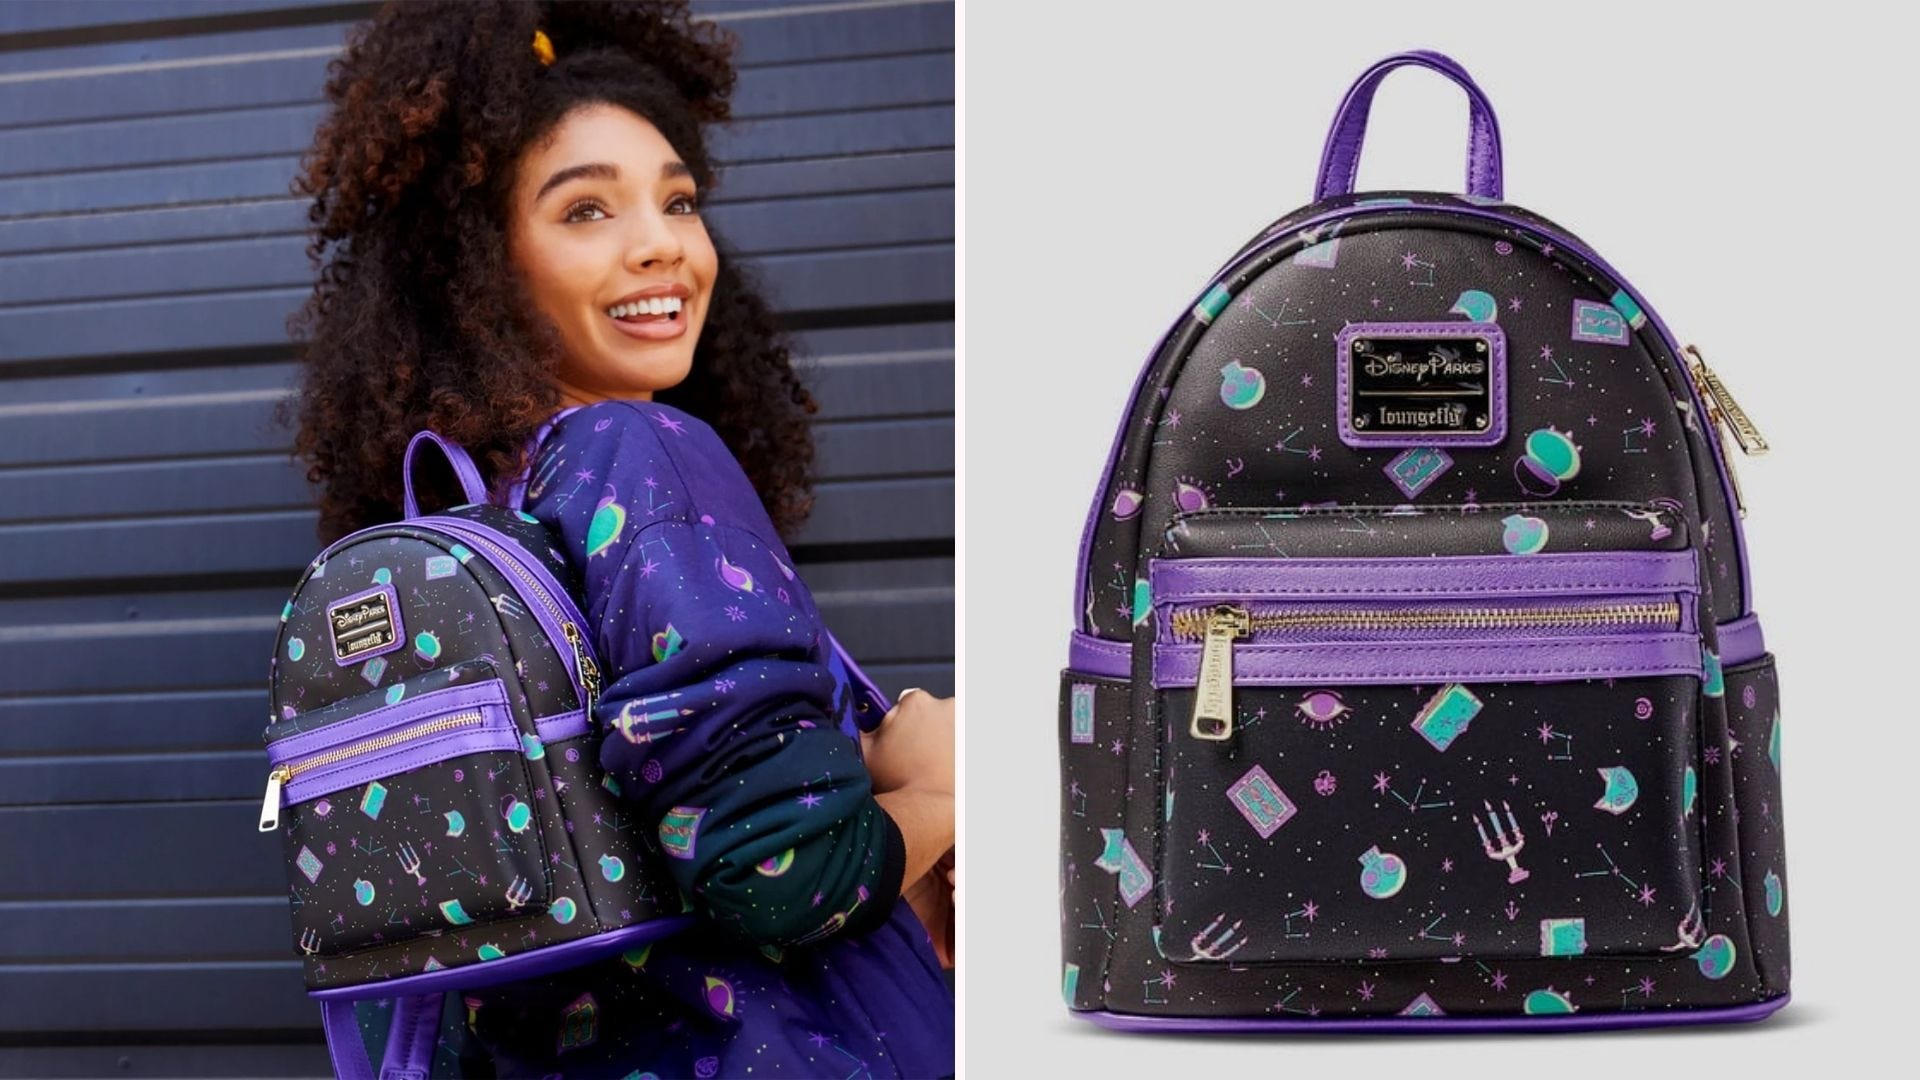 A woman wearing a Hocus Pocus themed backpack; closer view of the same backpack